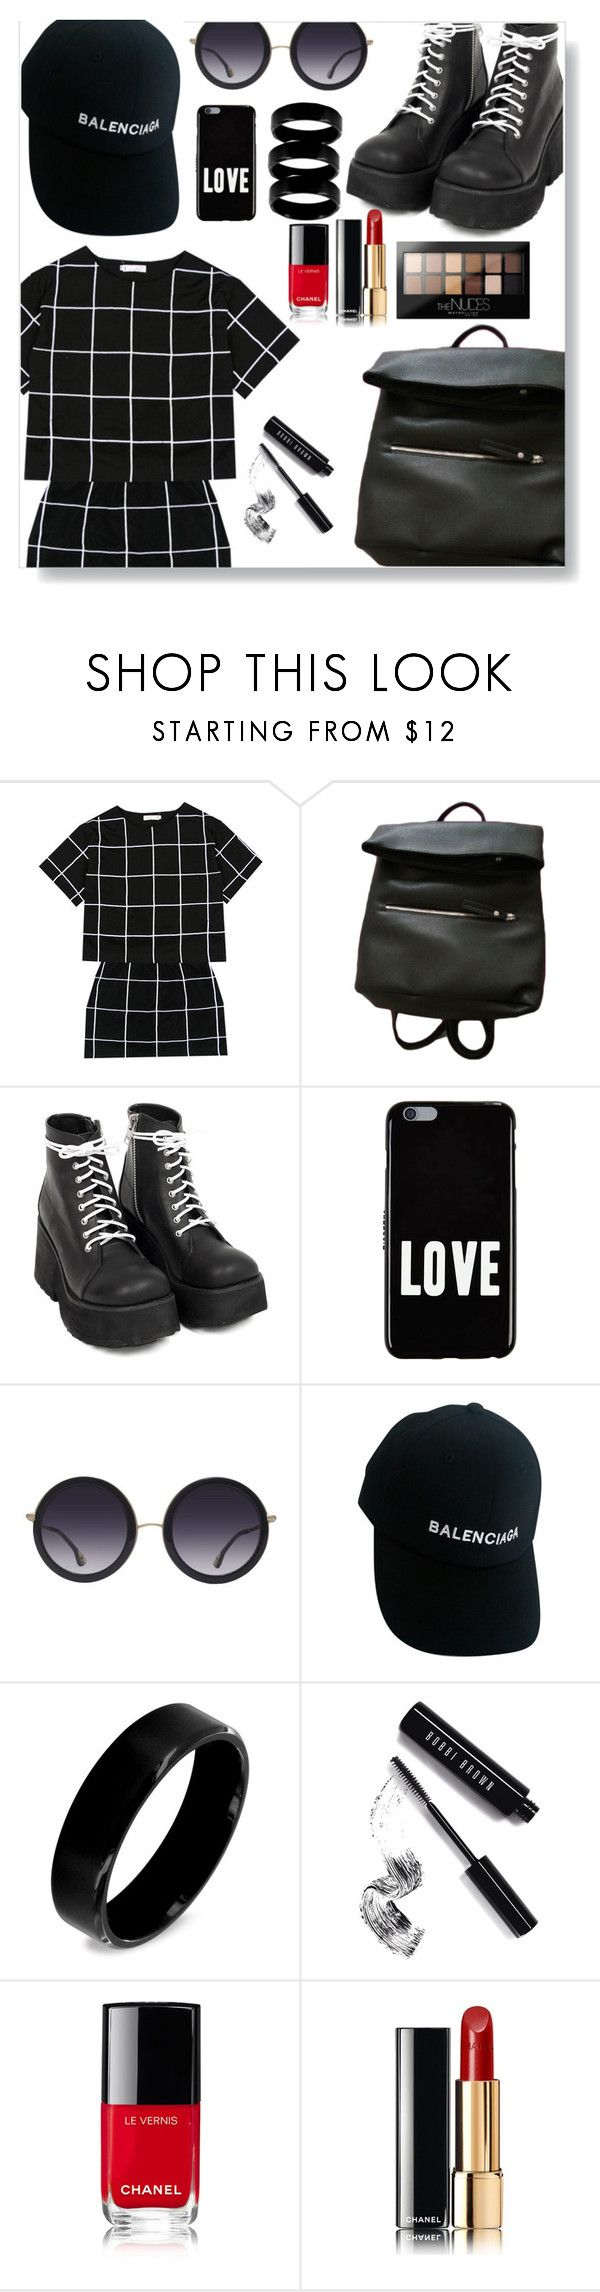 """""""Summer Day :) #4"""" by babeq ❤ liked on Polyvore featuring Givenchy, Alice + Olivia, Balenciaga, West Coast Jewelry, Bobbi Brown Cosmetics, Chanel and Maybelline"""